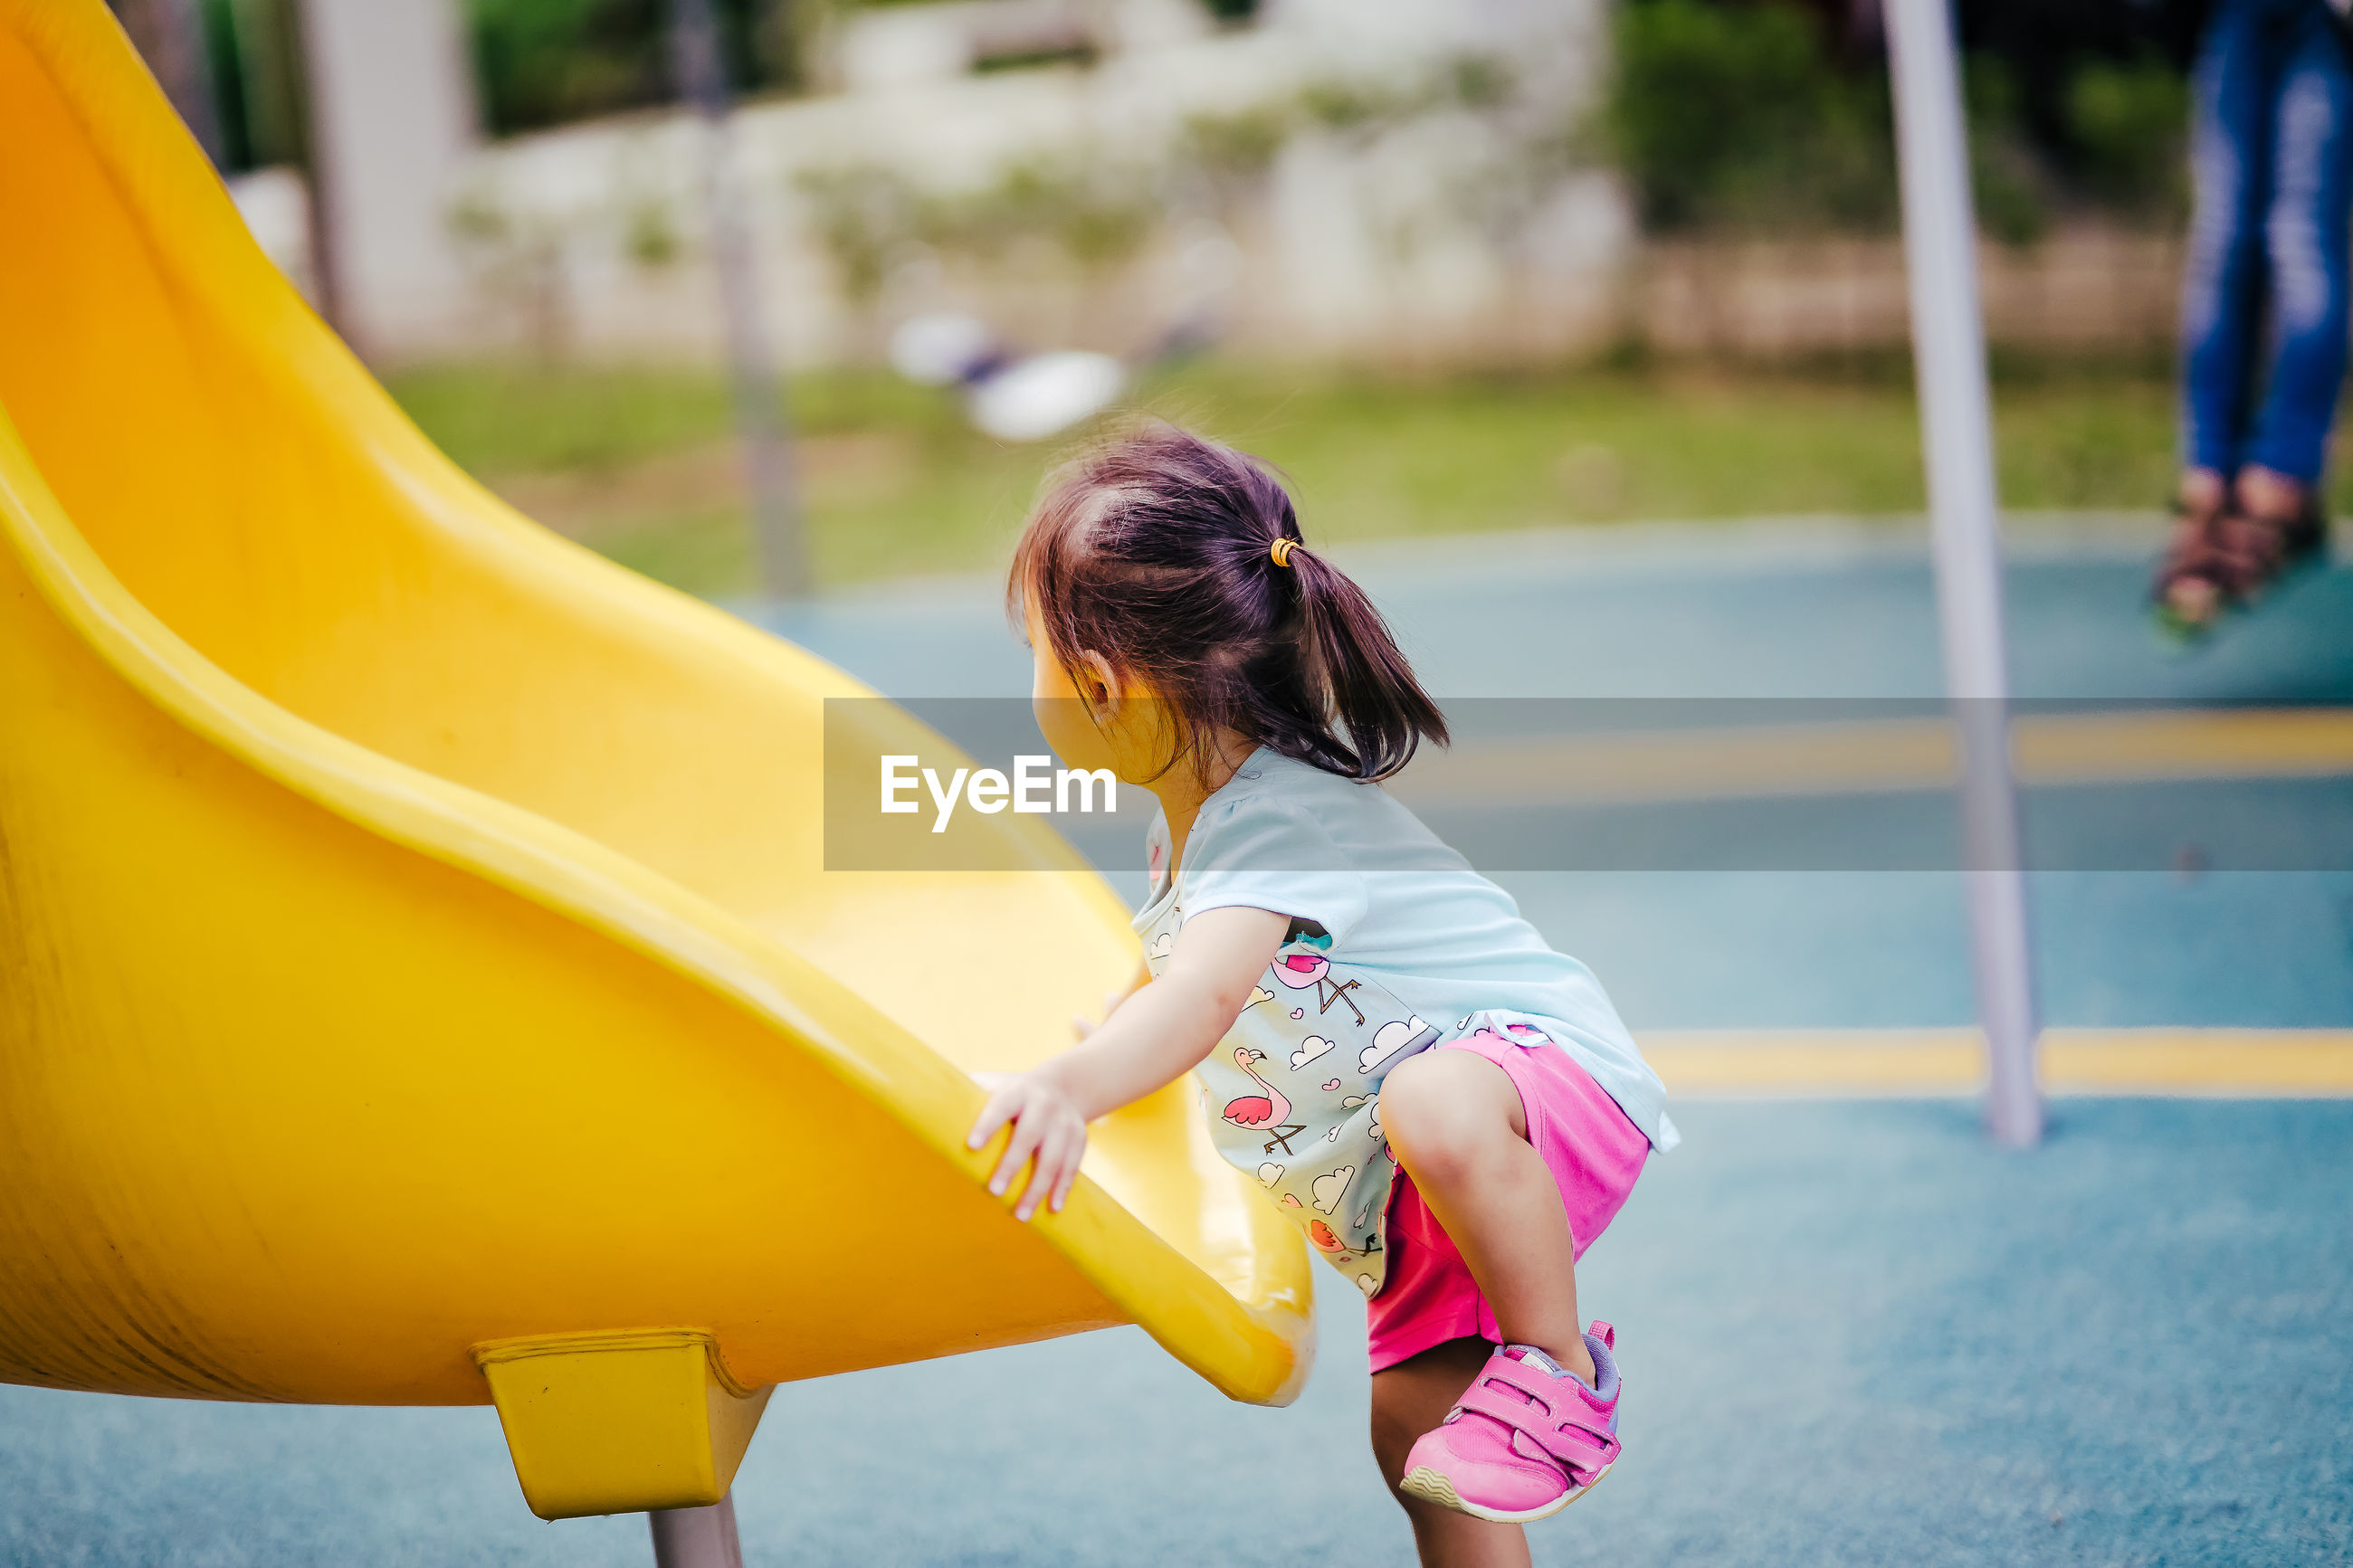 Side view of girl playing on slide